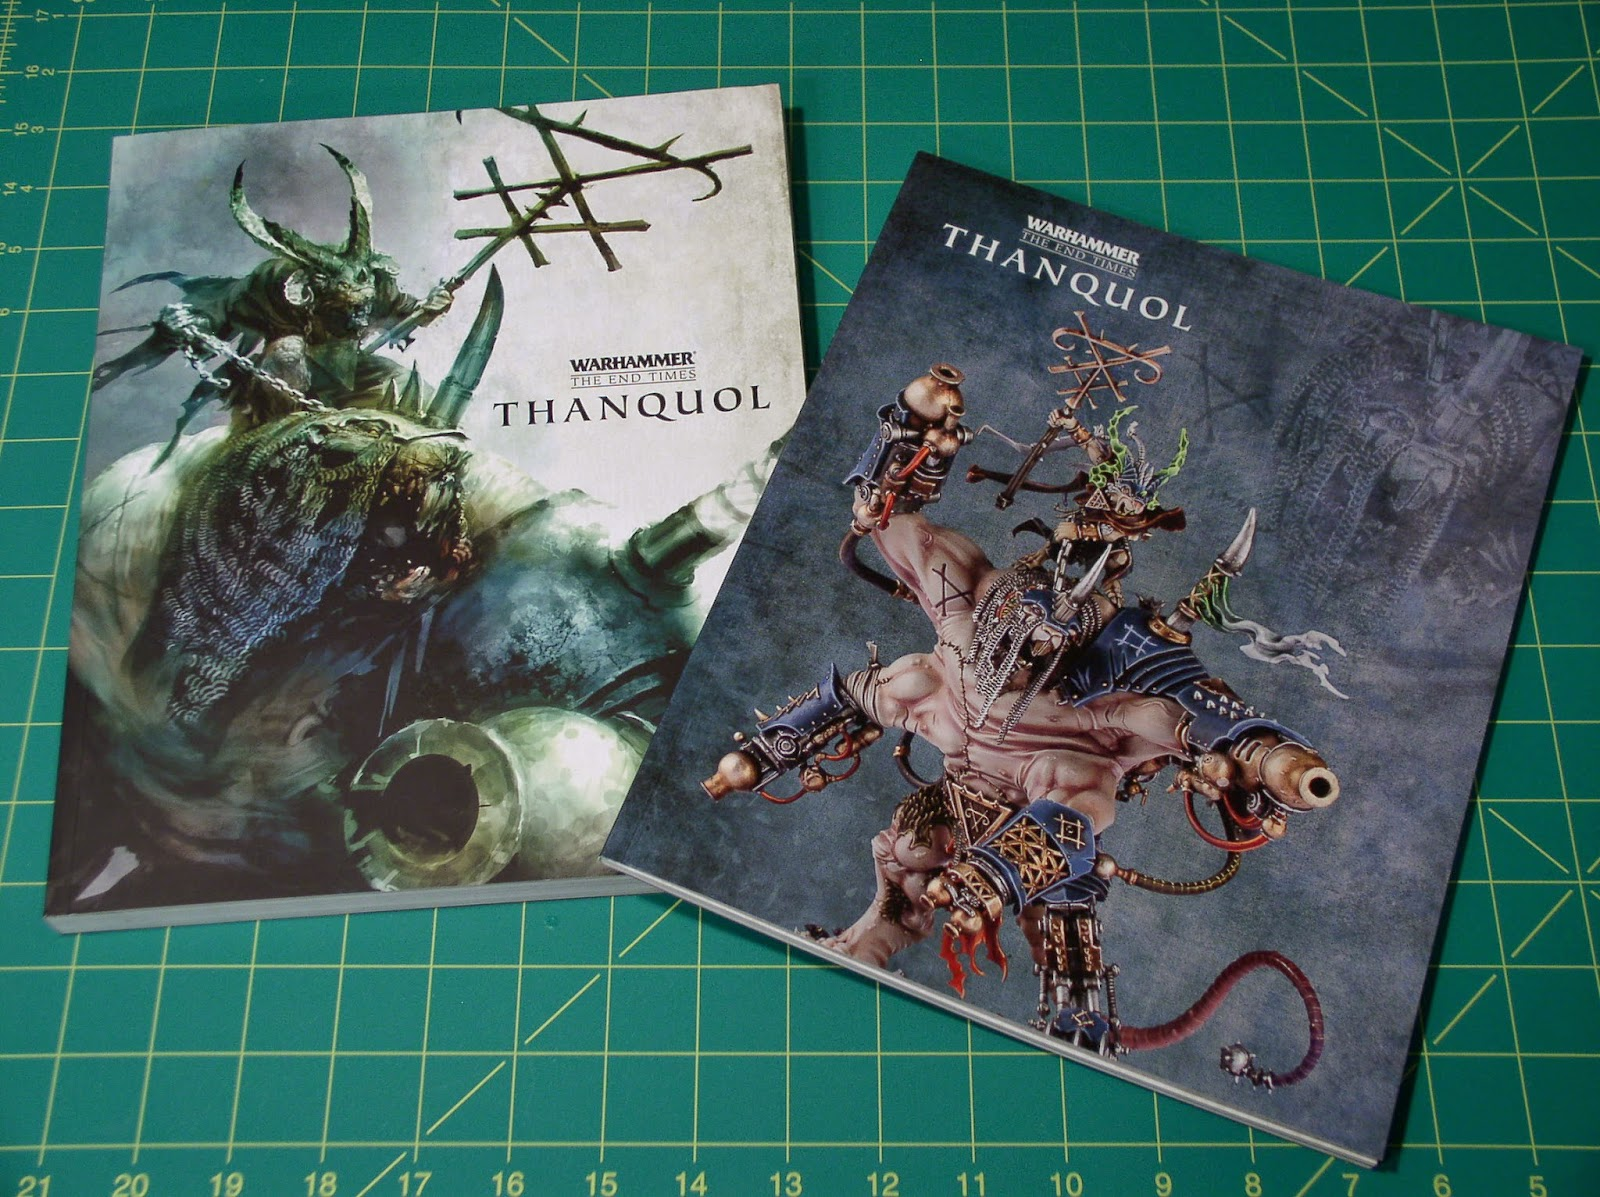 Warhammer: Thanquol, A Look Inside